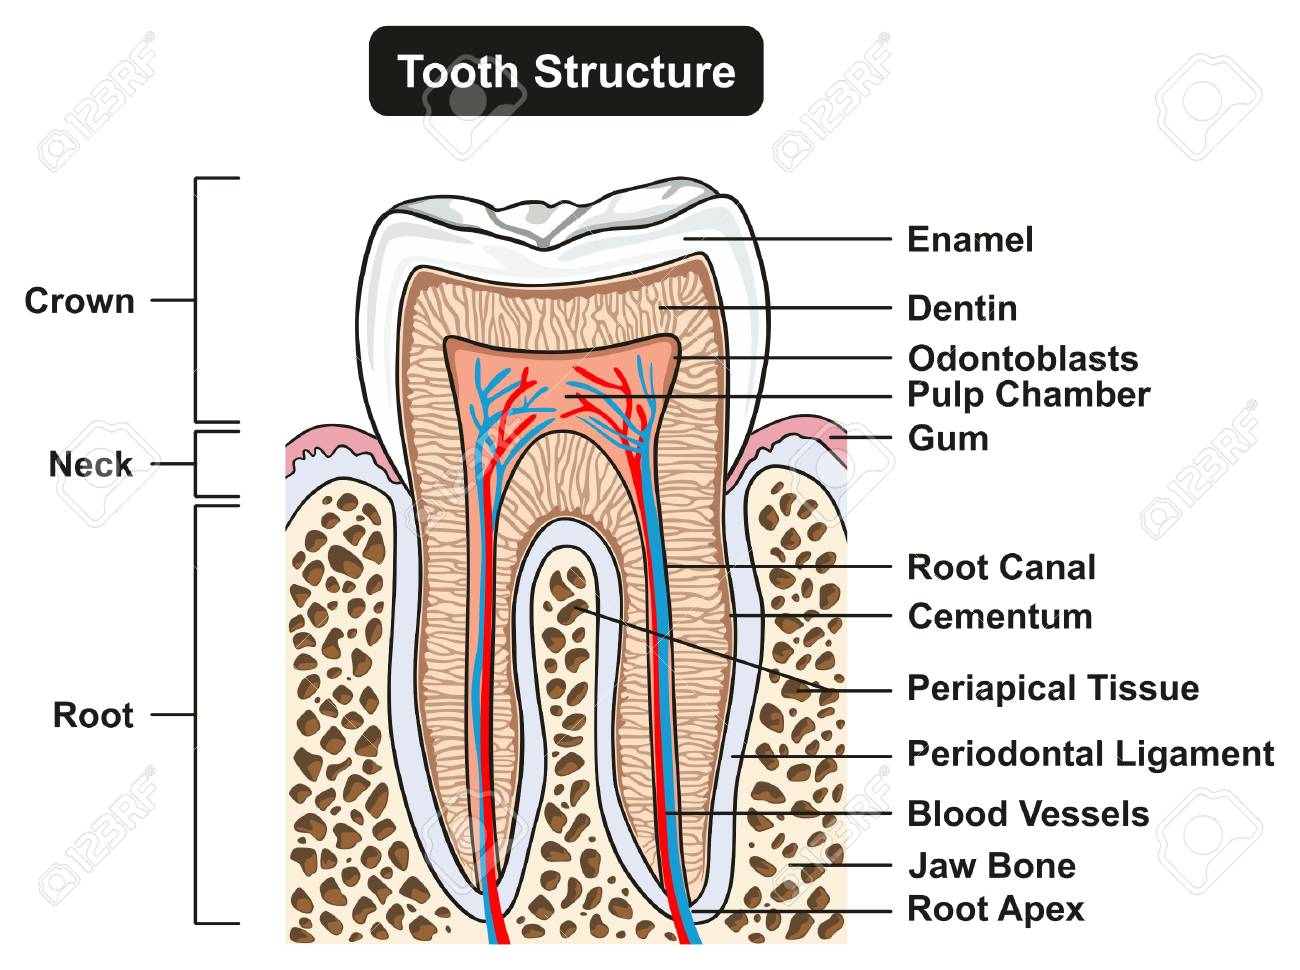 Tooth Cross Section Anatomy With All Parts Including Crown Neck ...